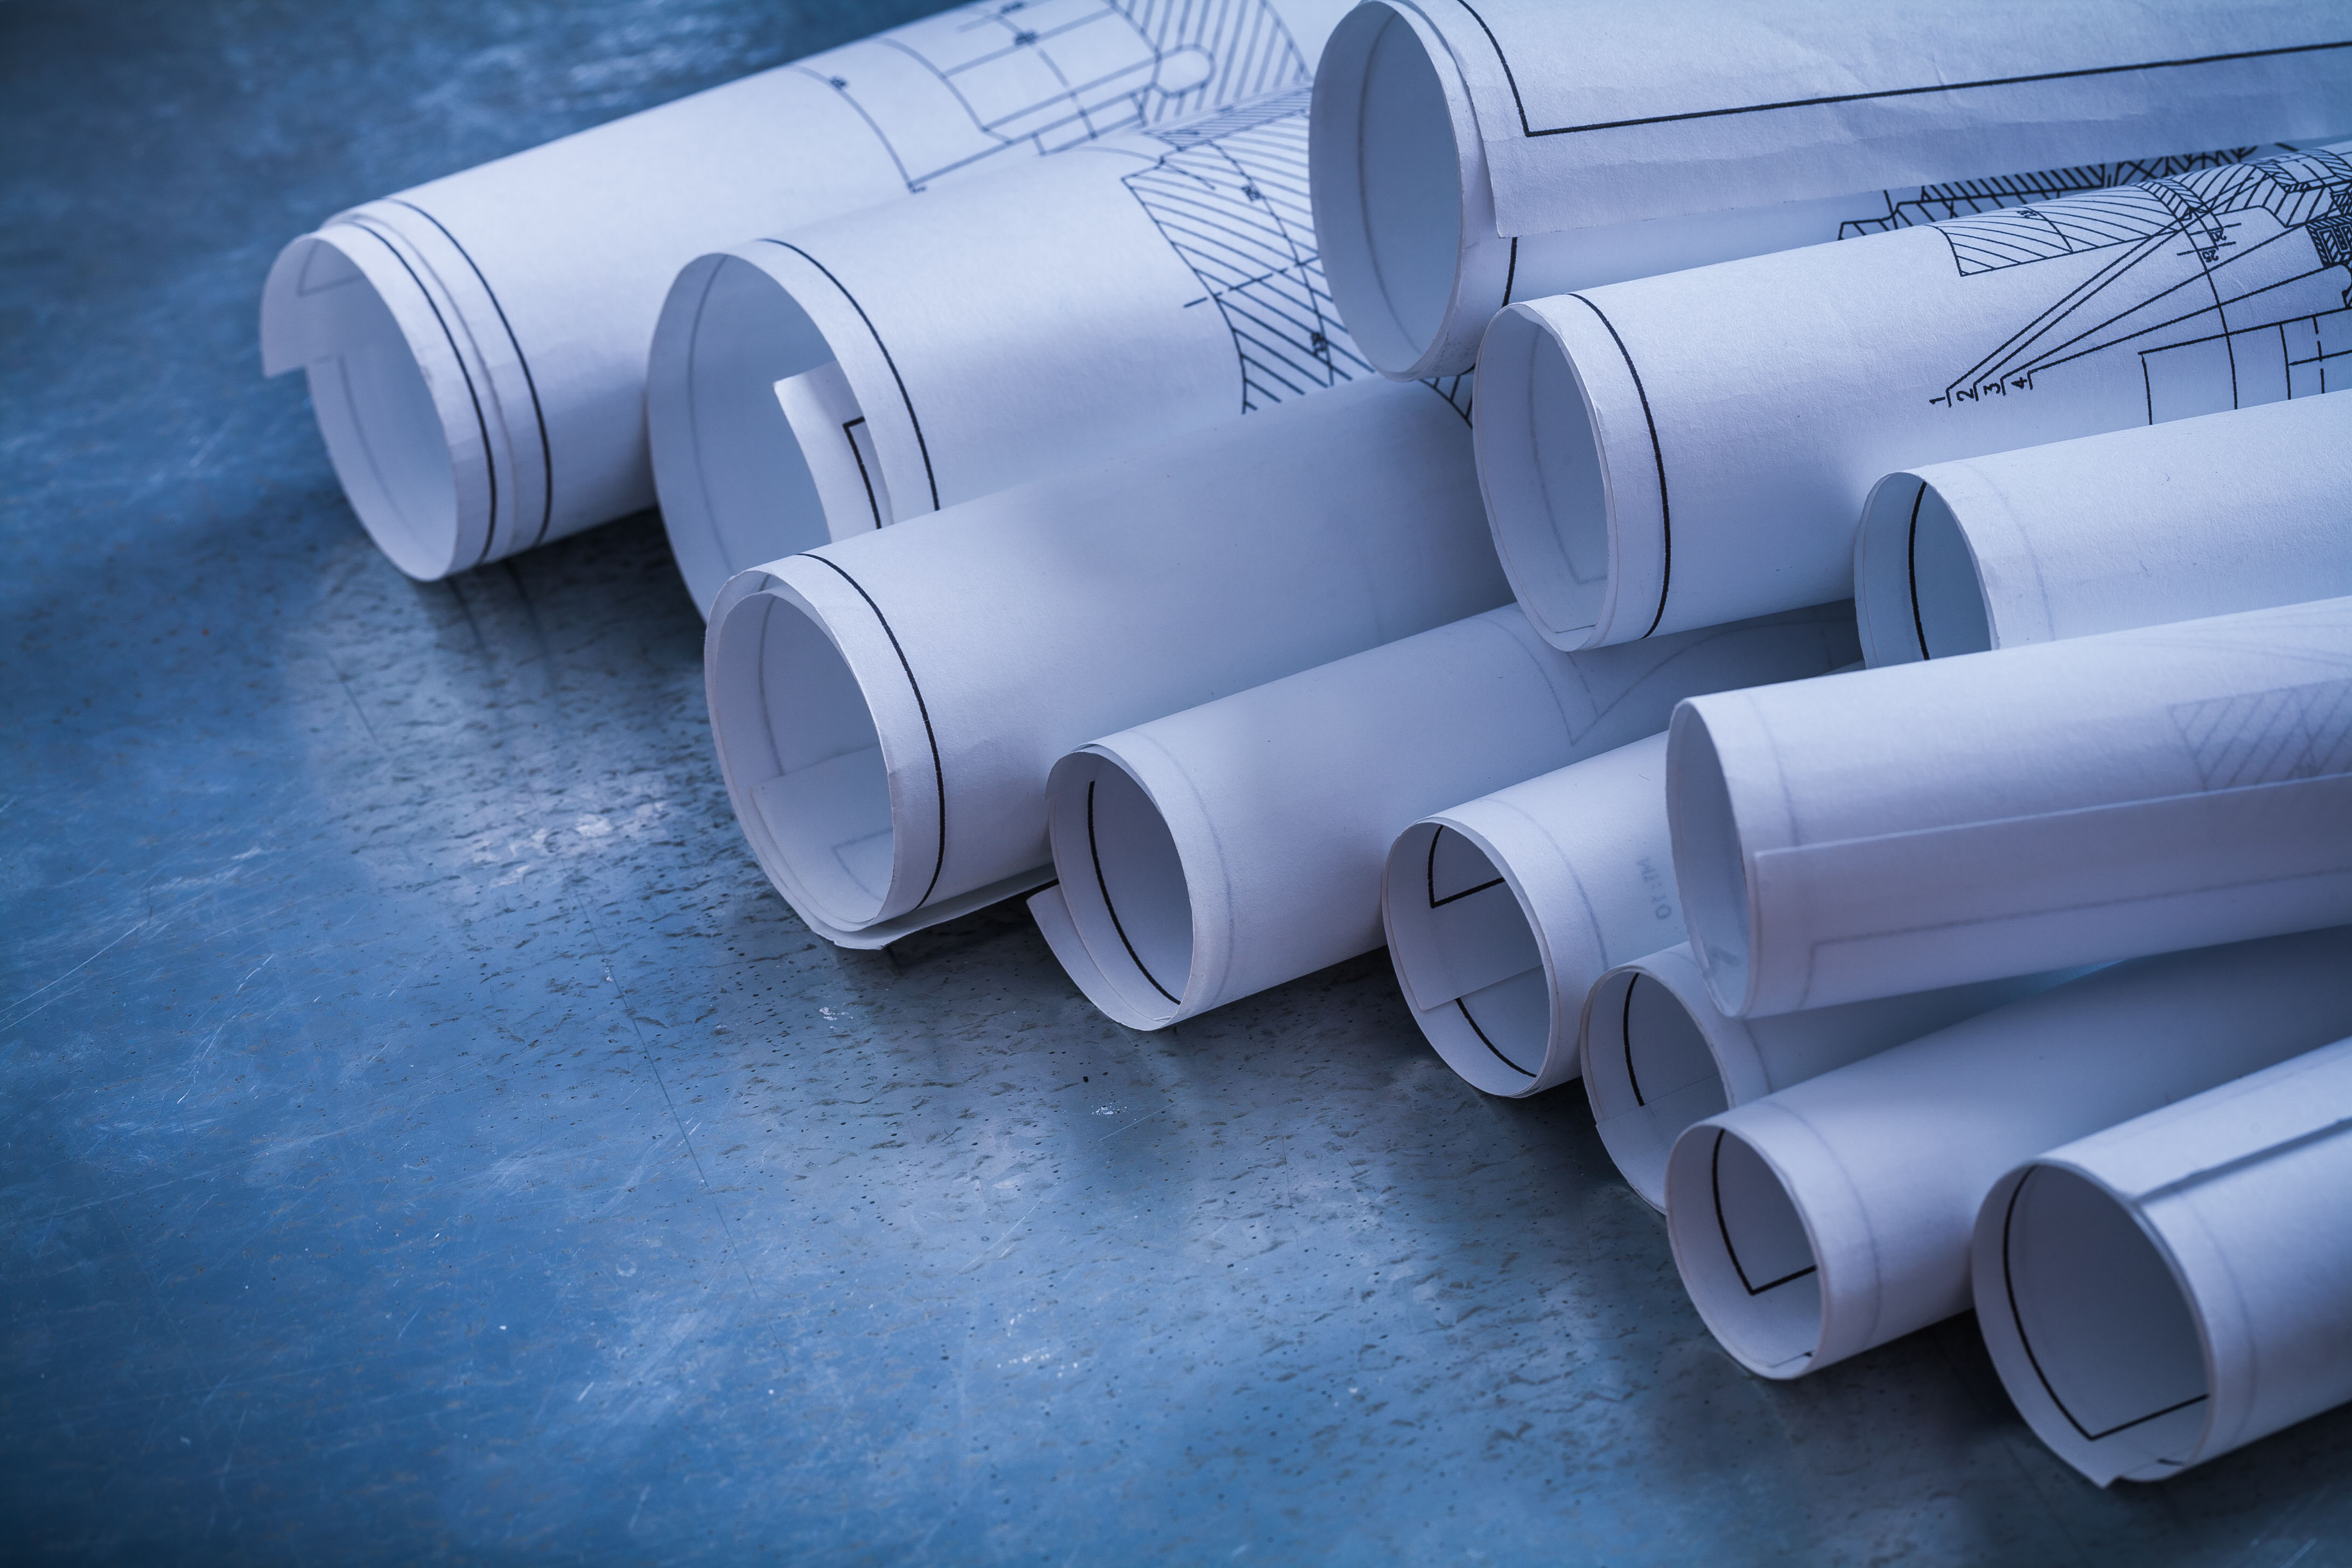 Rolls of blueprints.